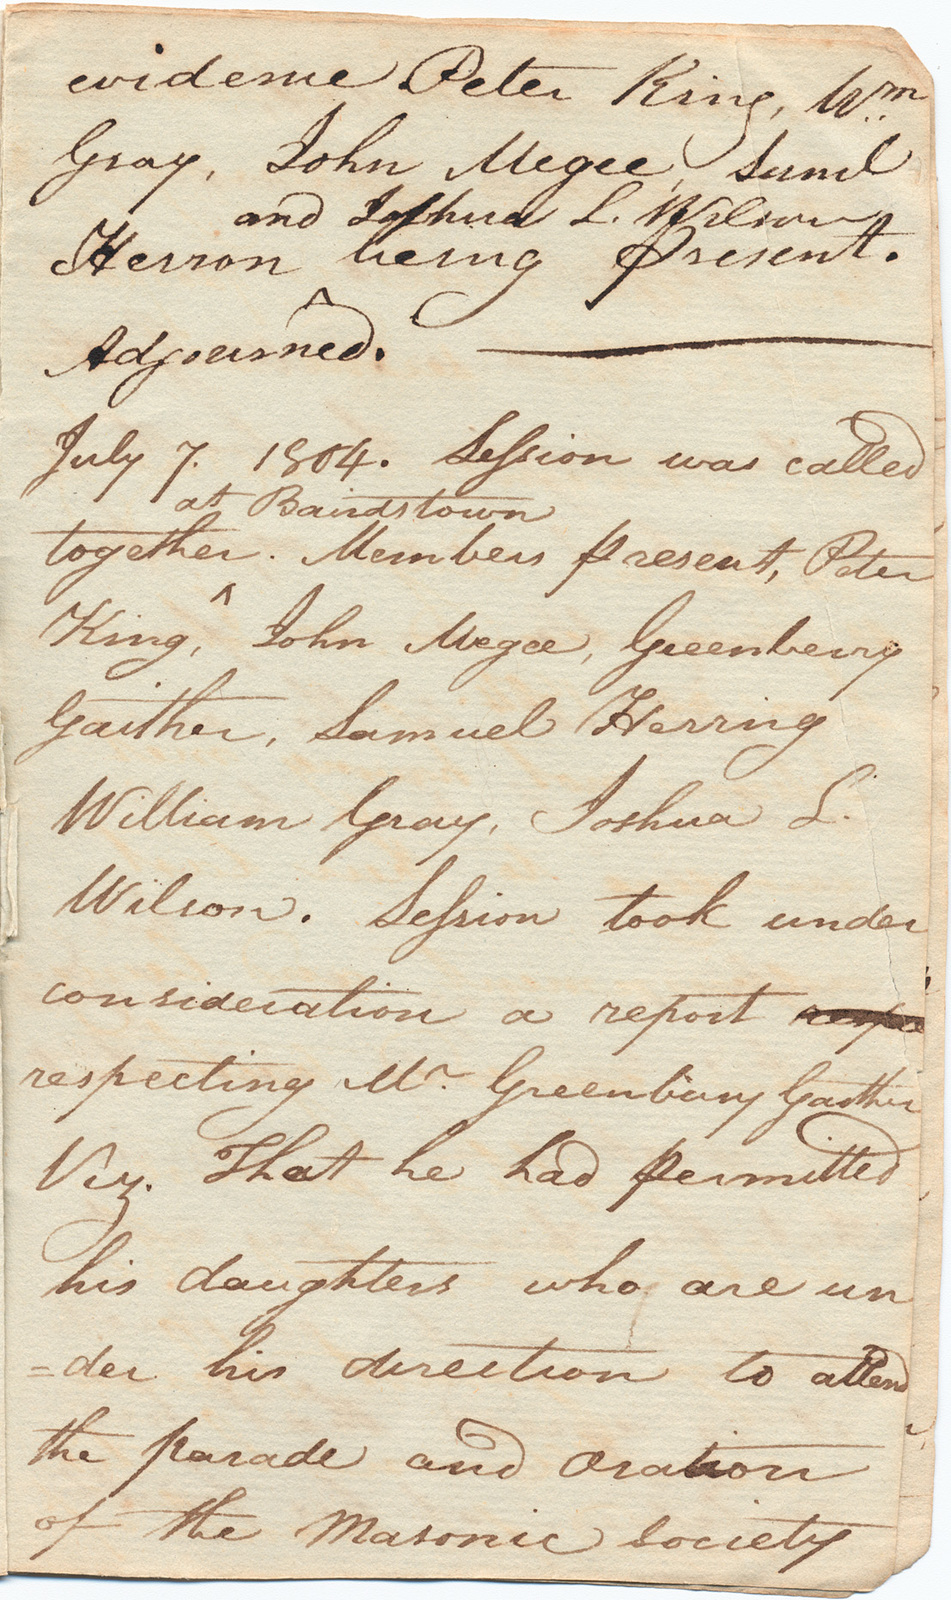 Minutes of Presbyterian congregation meetings at Big Spring and Bardstown, Kentucky